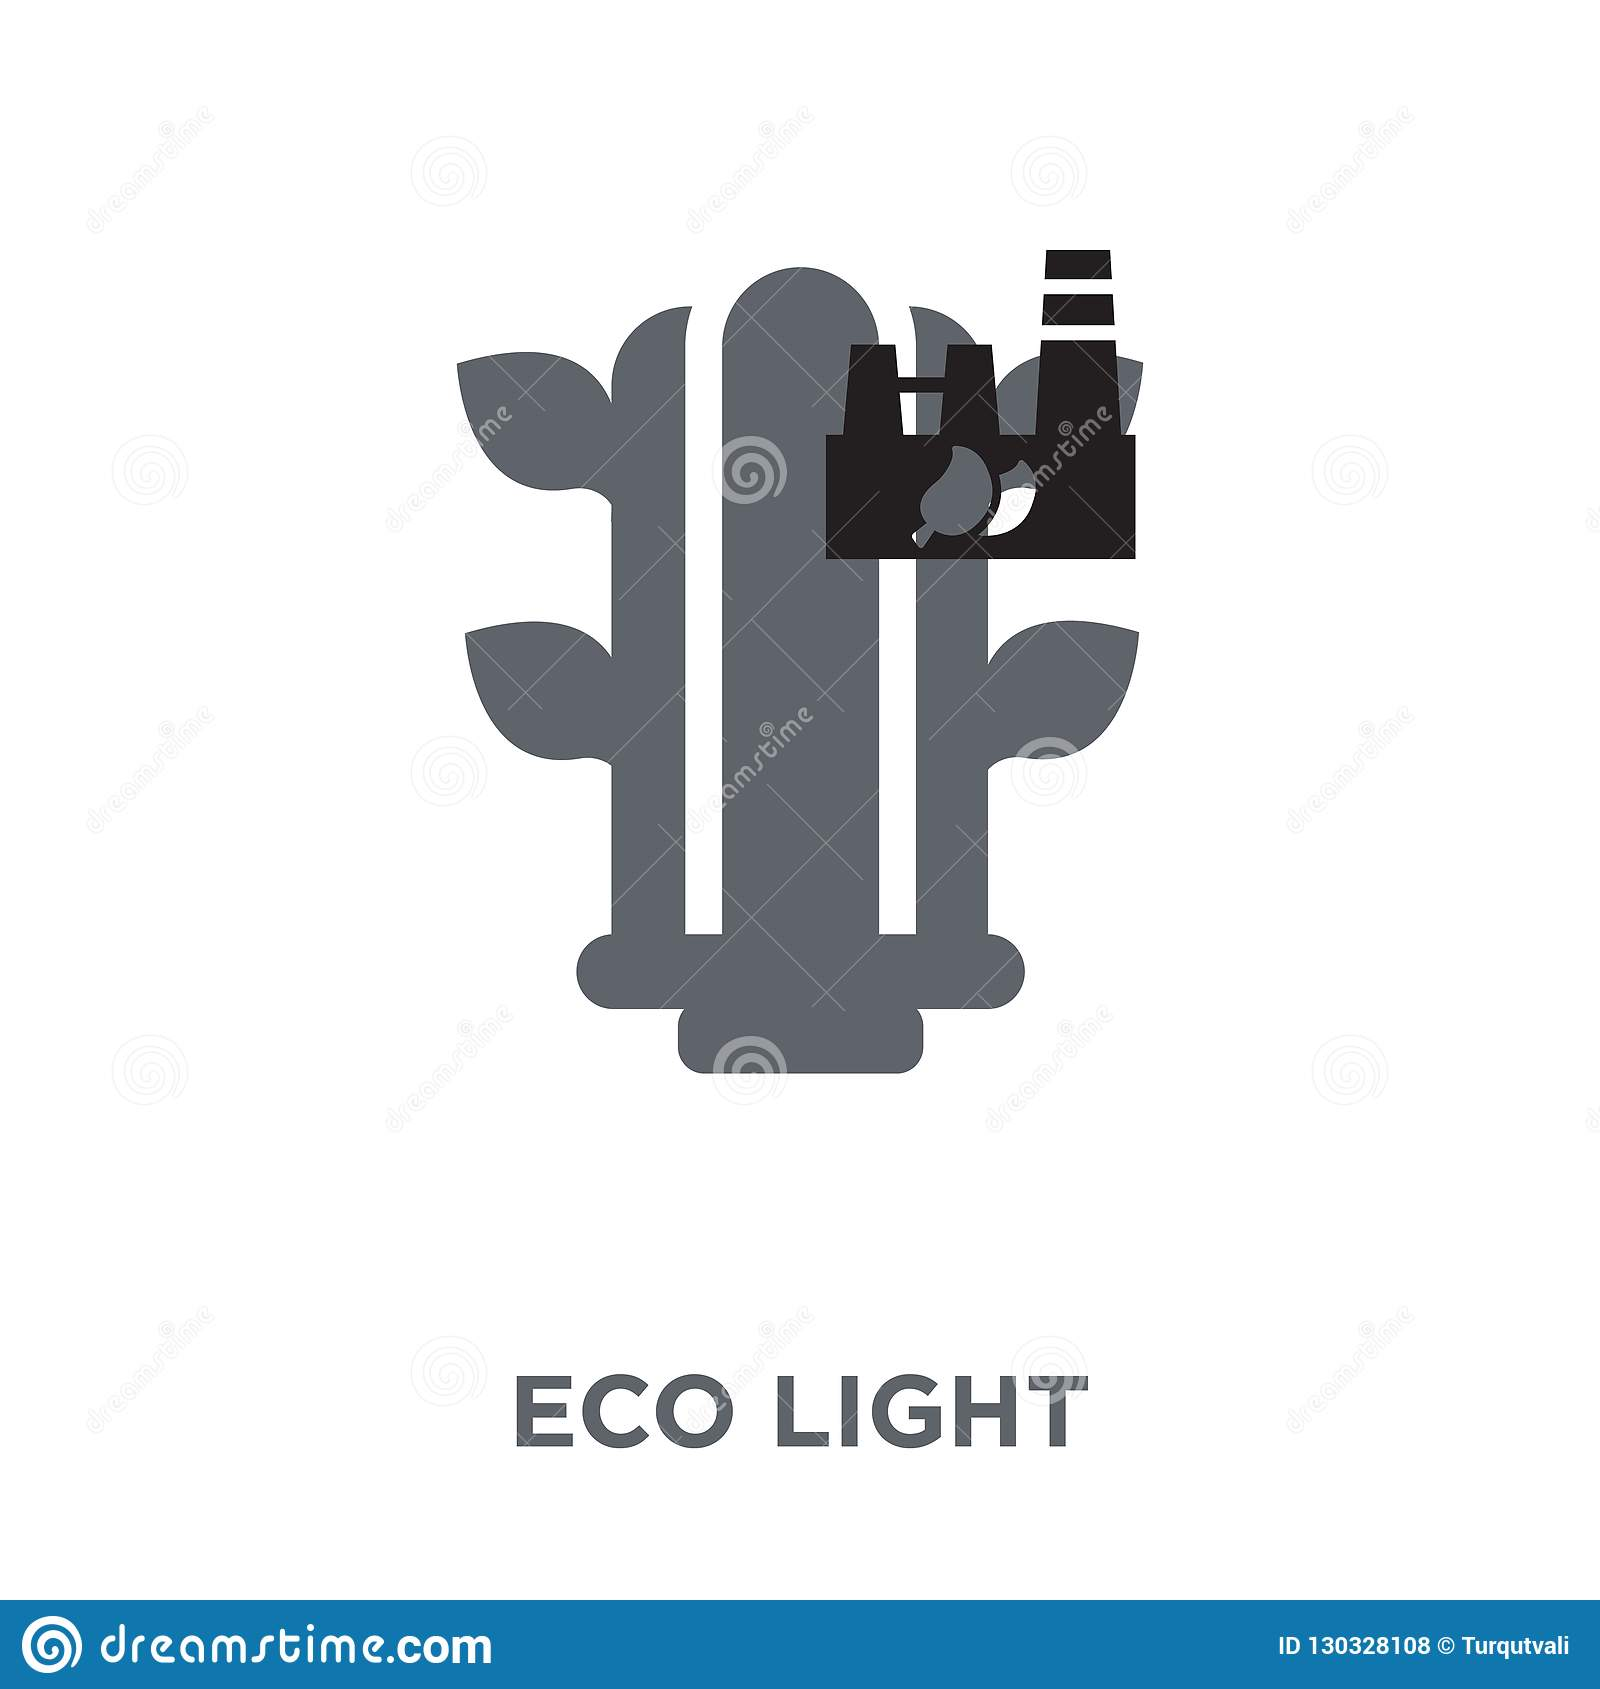 Eco light icon from Ecology collection.